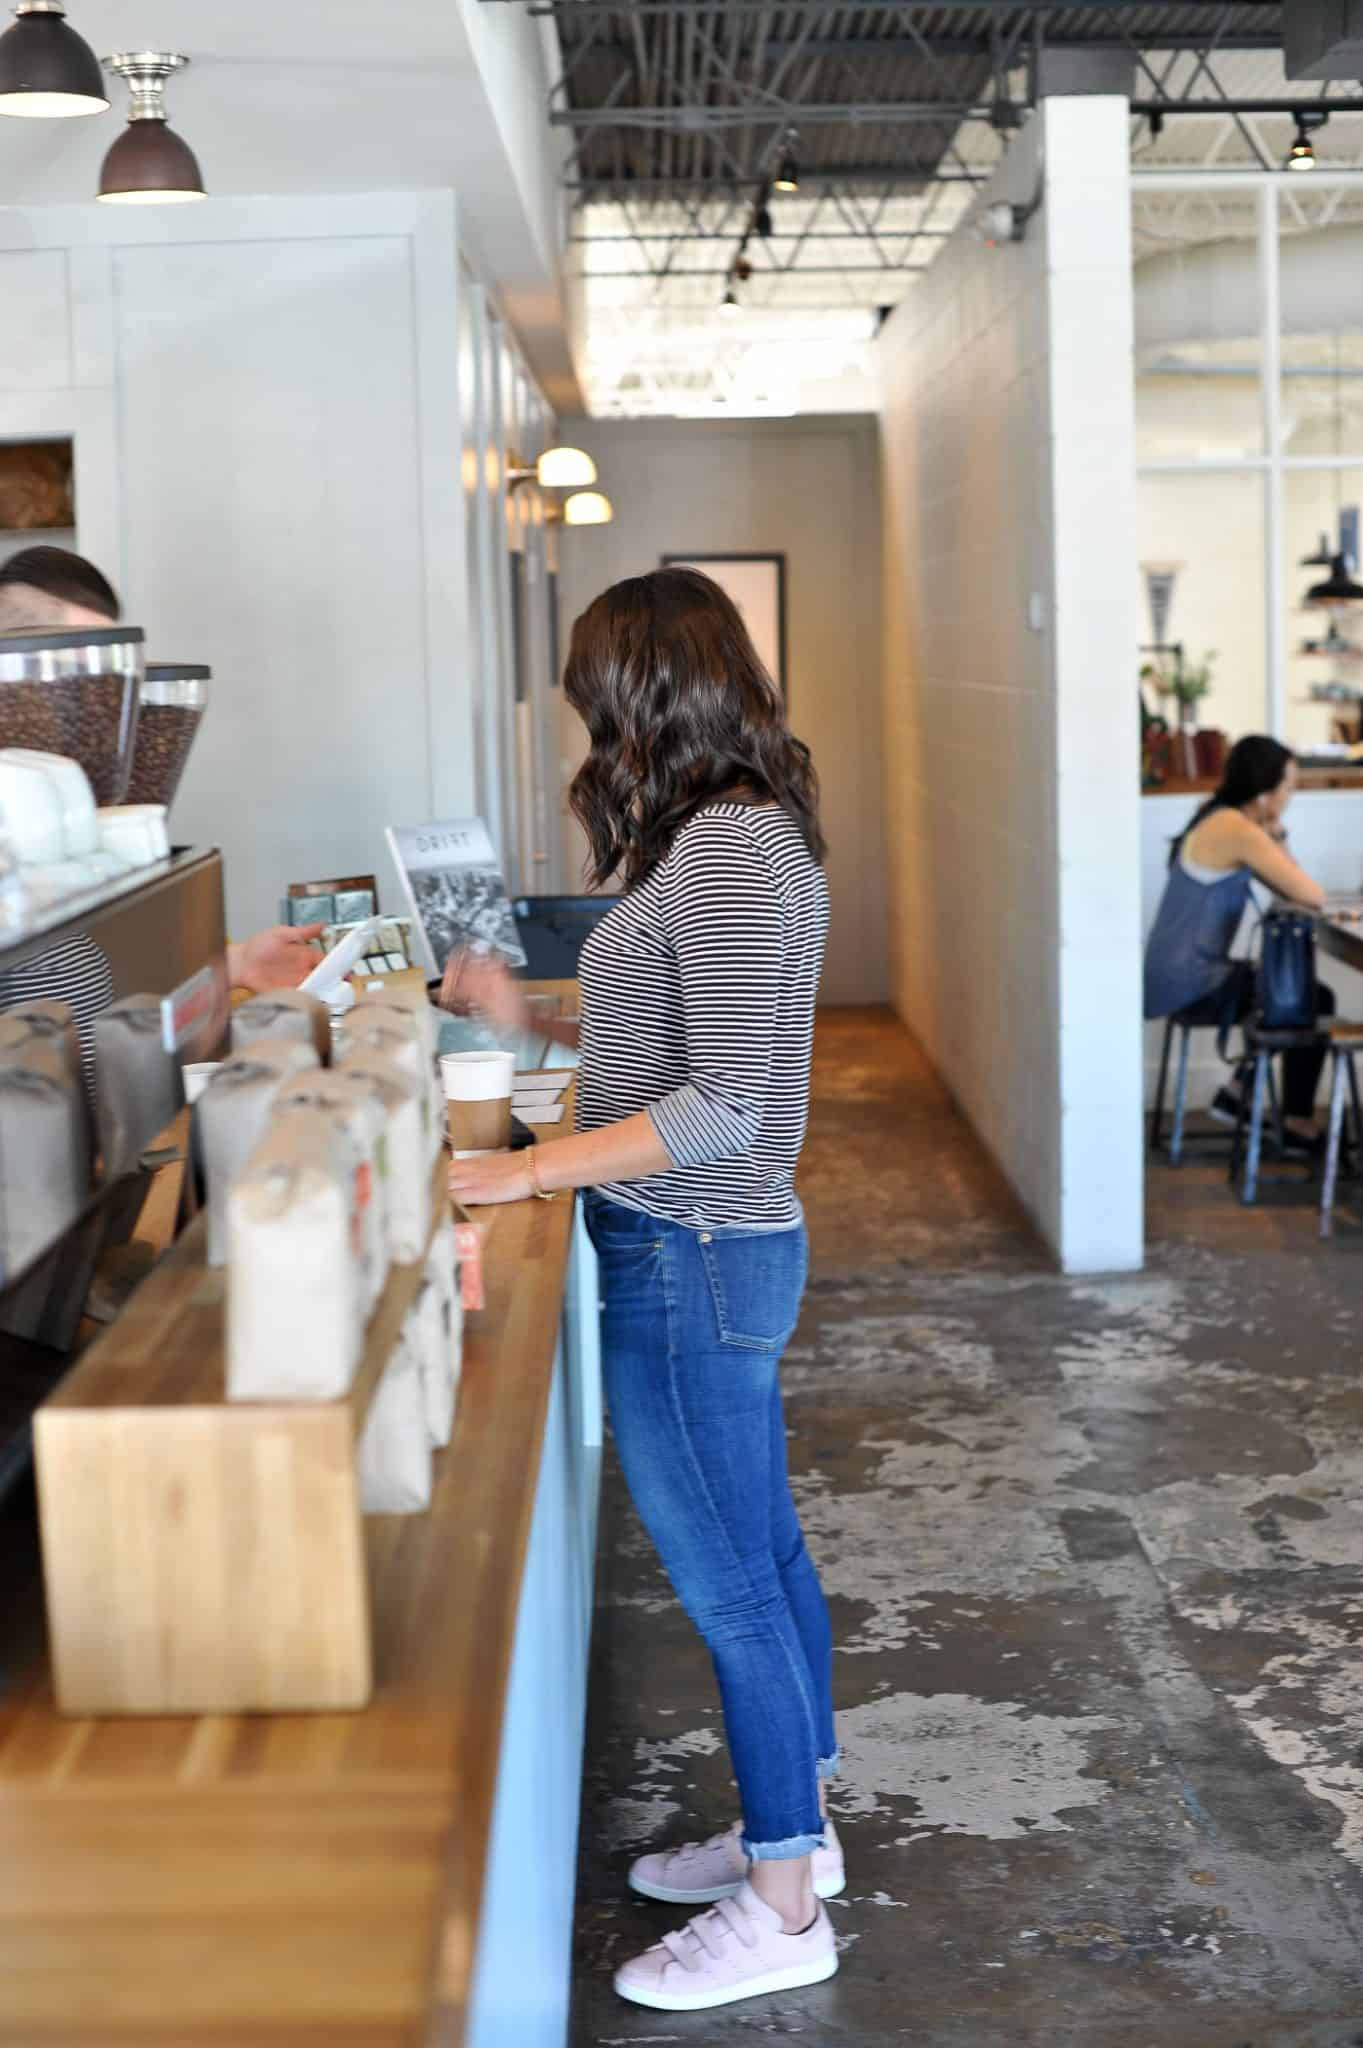 The Best New Coffee Shop In Atlanta, Atlanta unique stores | My Style Vita @mystylevita